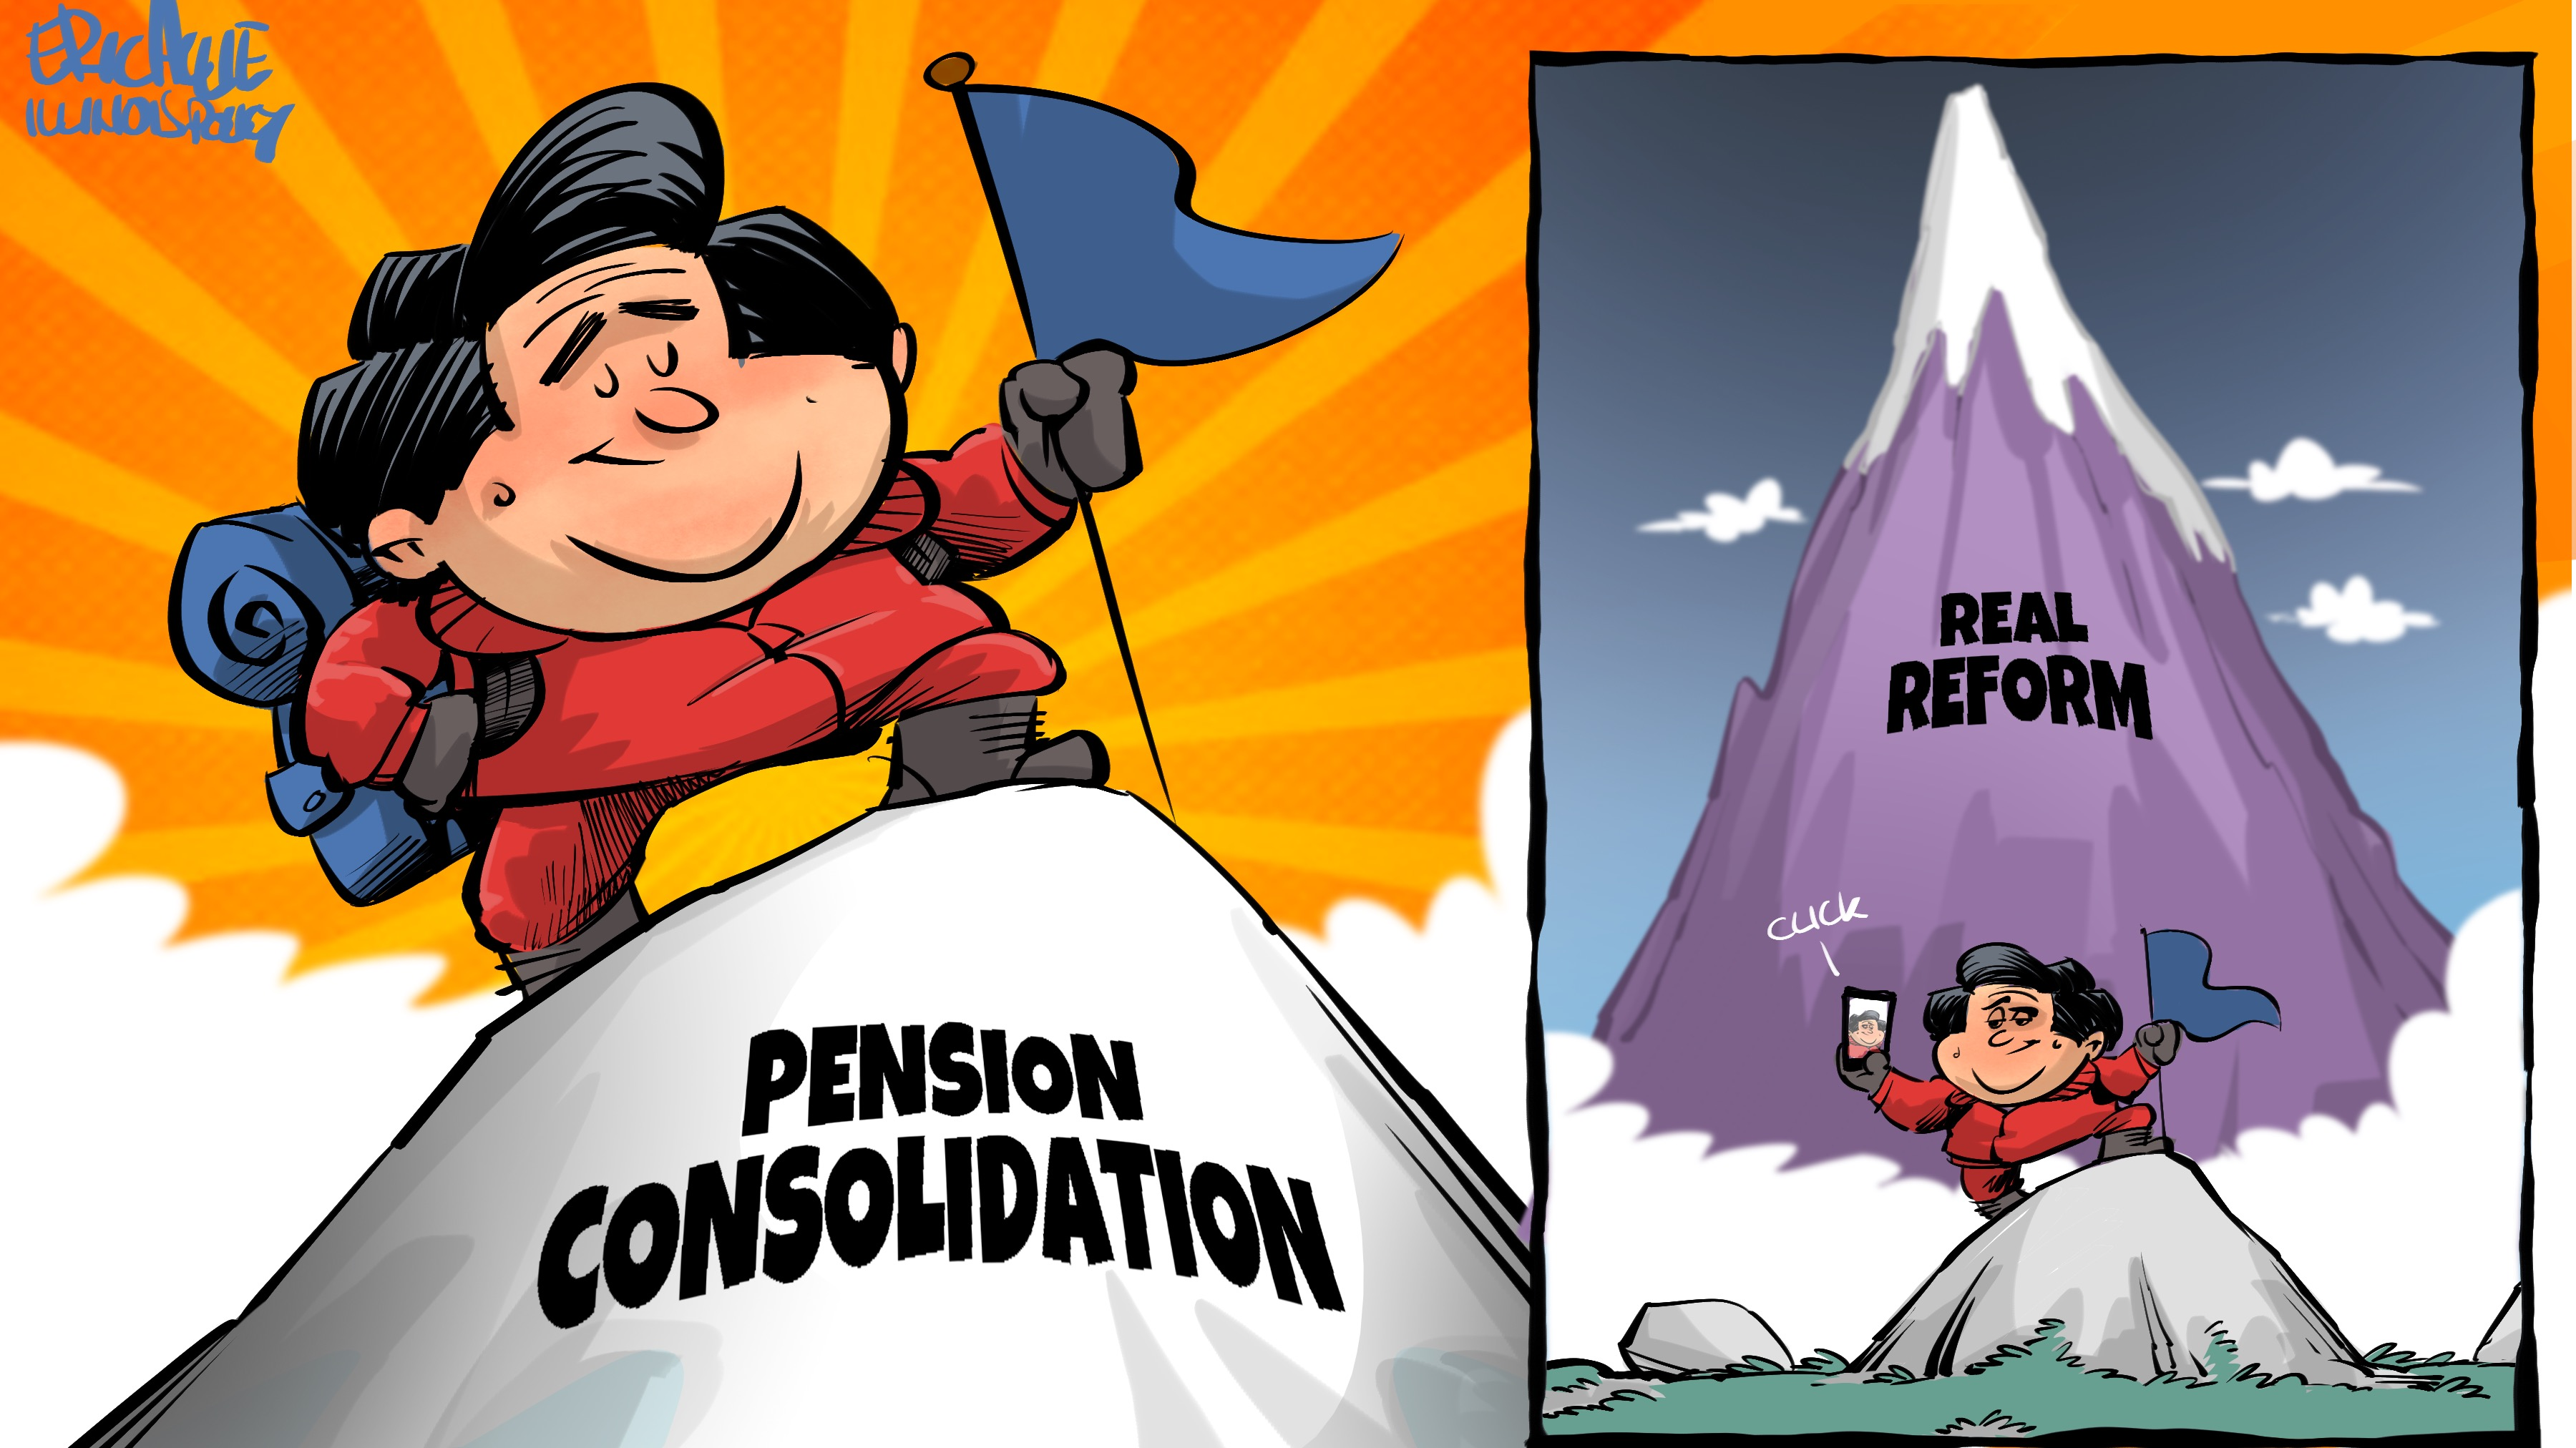 Pritzker's pension consolidation vs. real reform